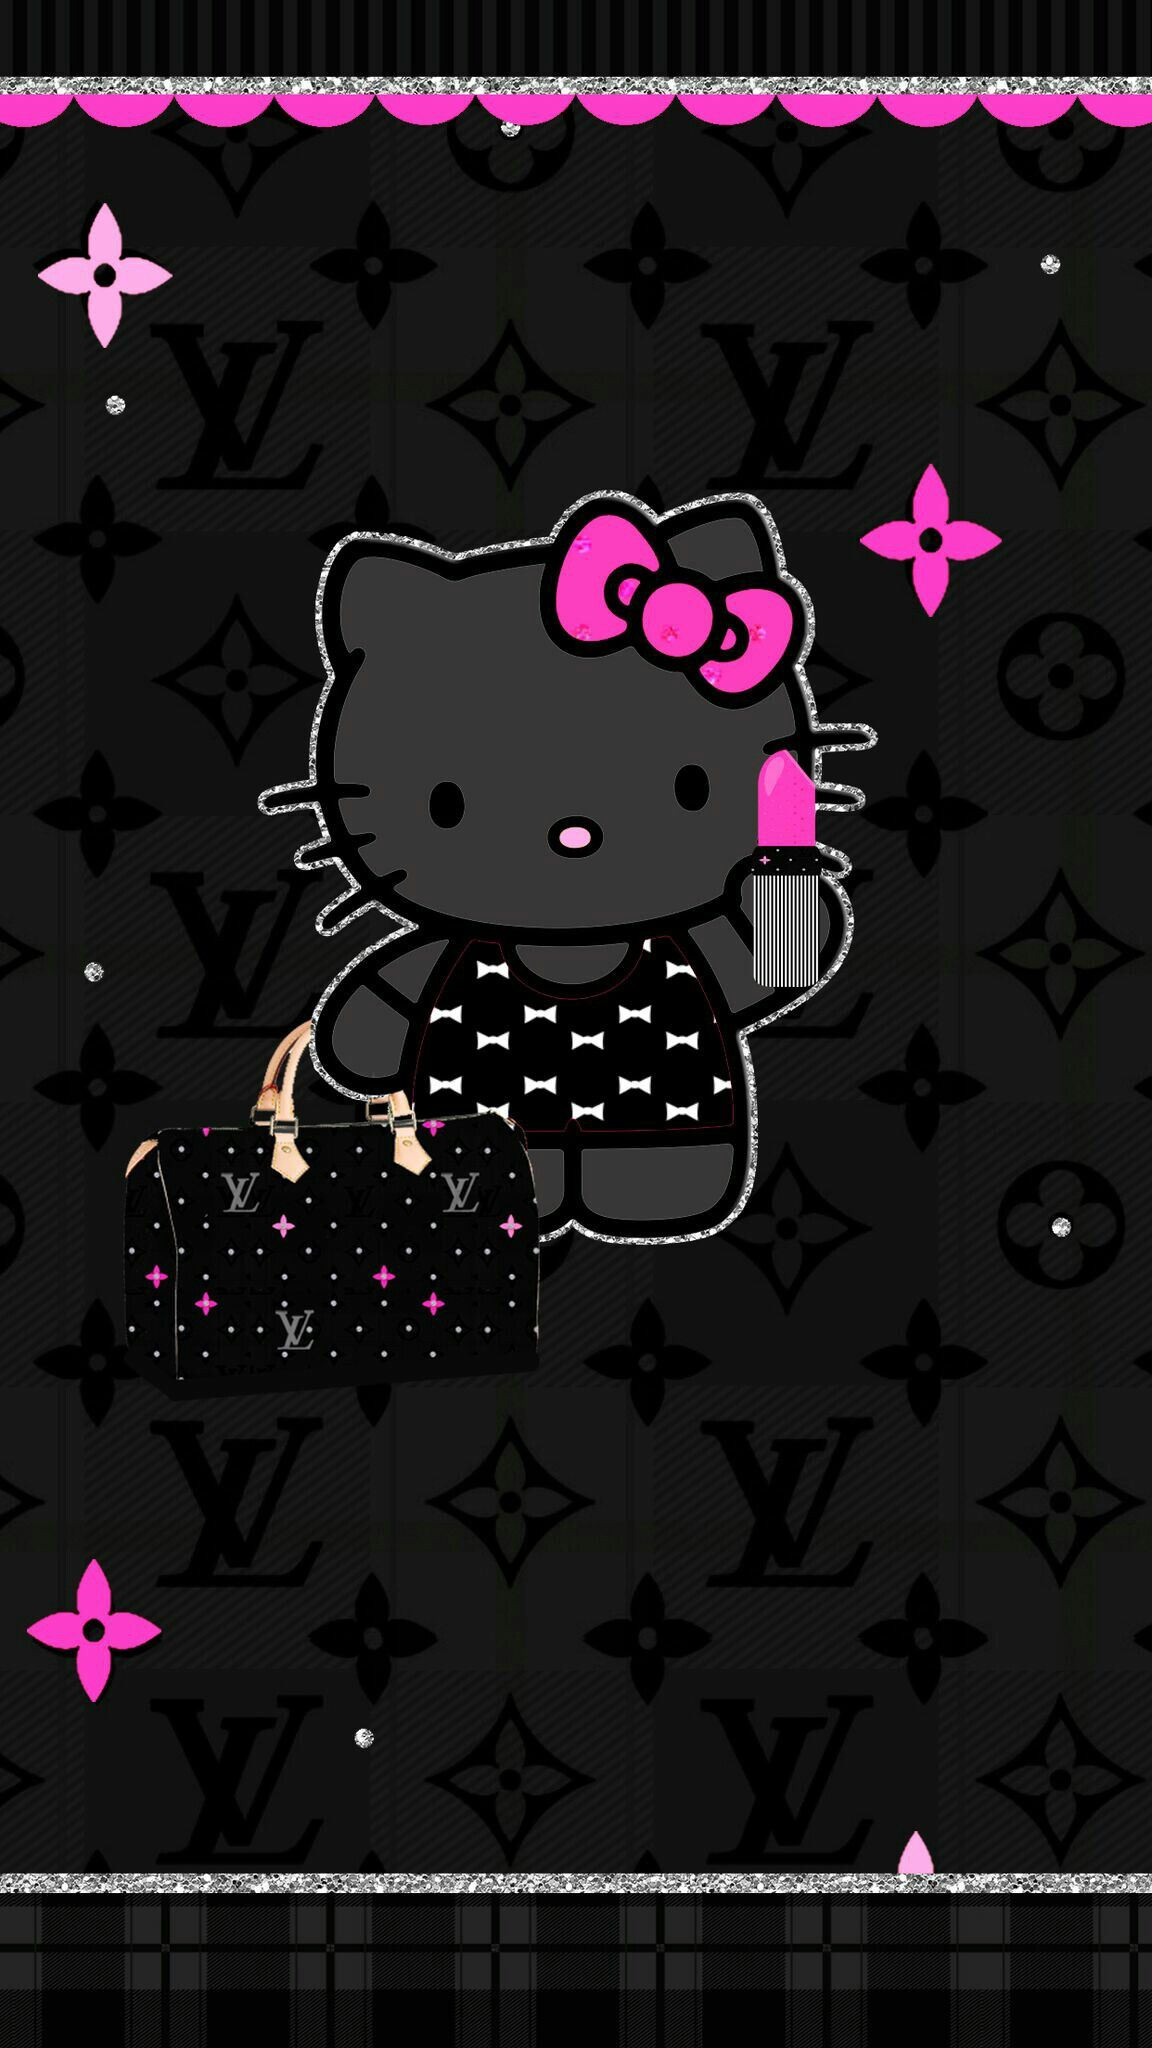 Fosterginger Pinterest Com No Pin Limits More At Fosterginger Pinterest Hello Kitty Iphone Wallpaper Hello Kitty Pictures Hello Kitty Backgrounds